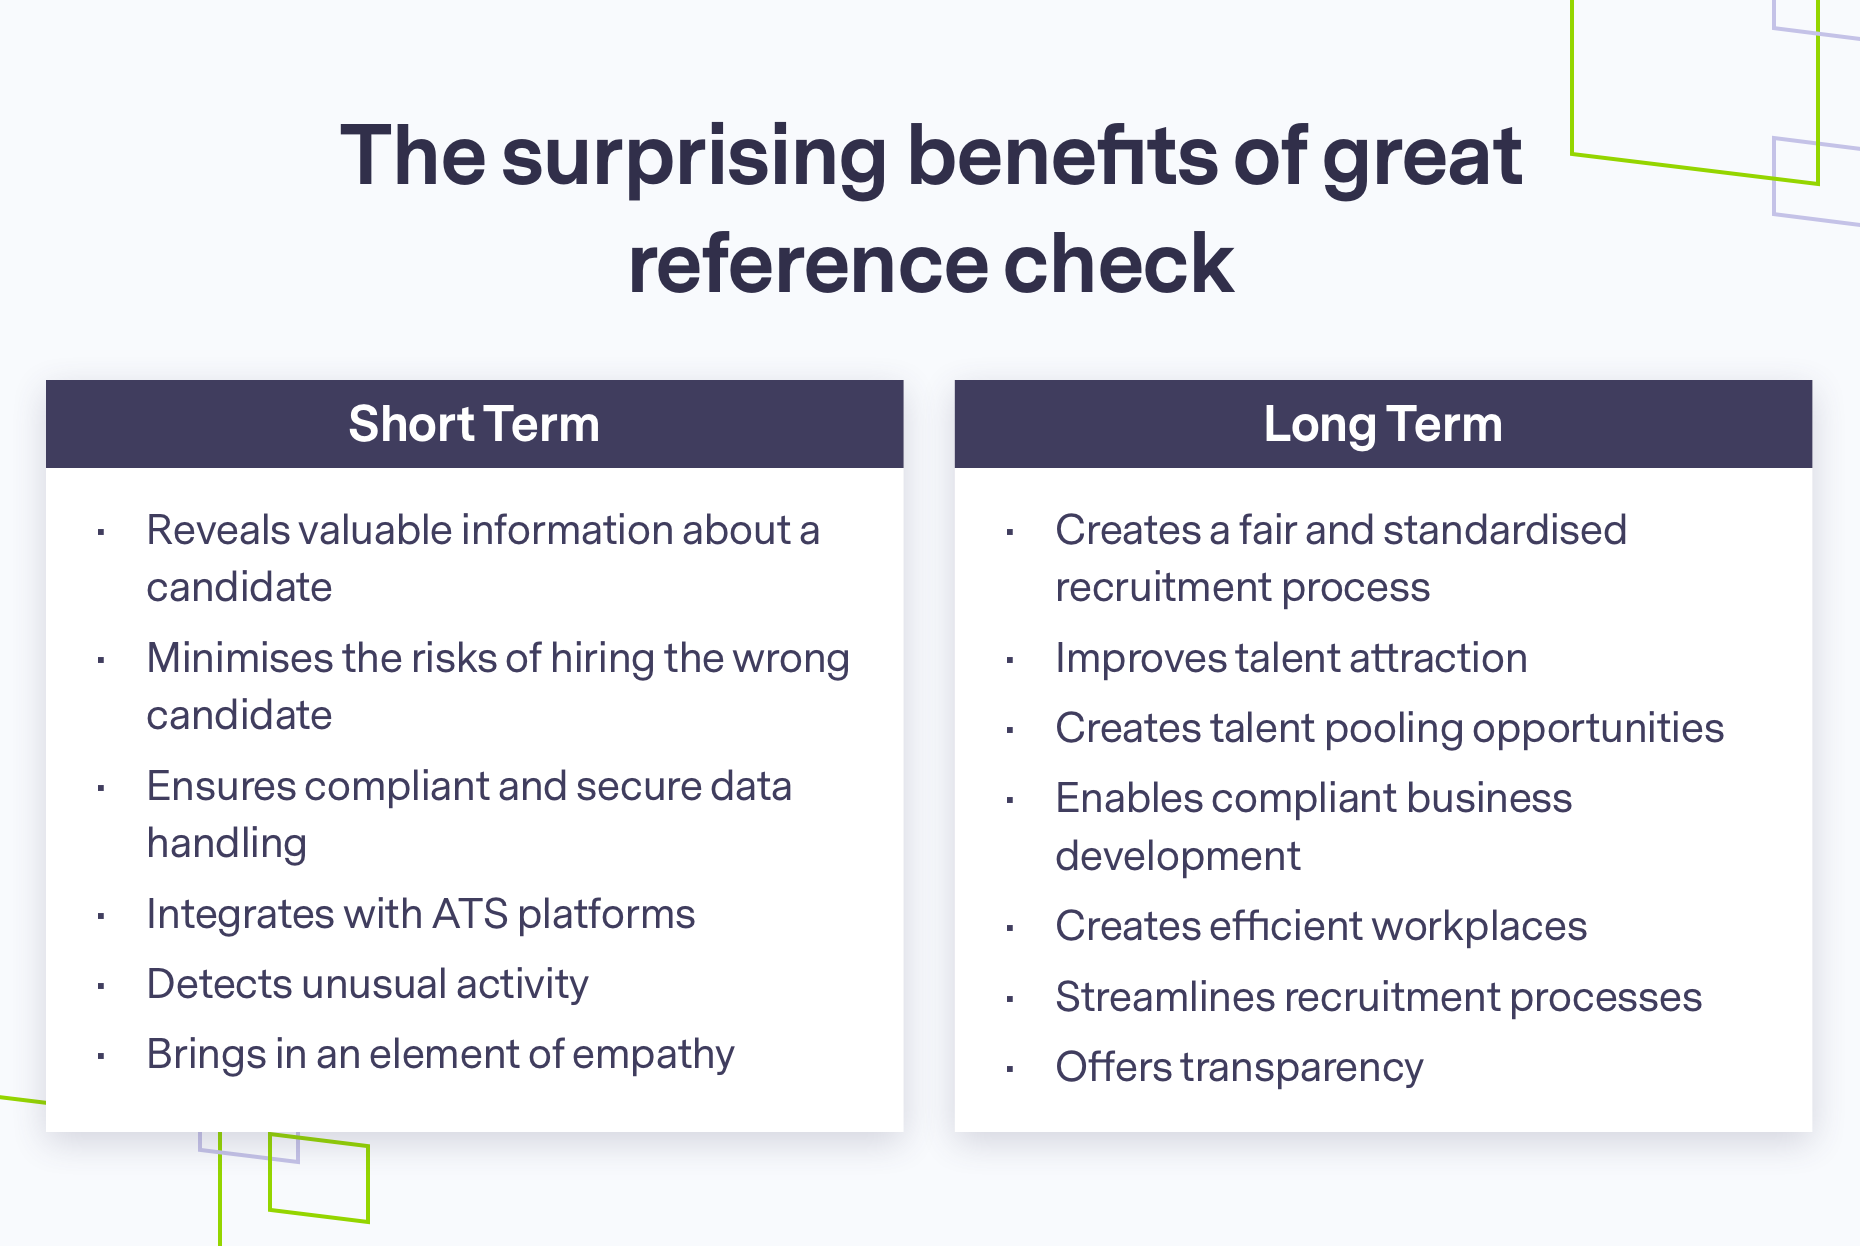 Short and long term benefits of a great reference check